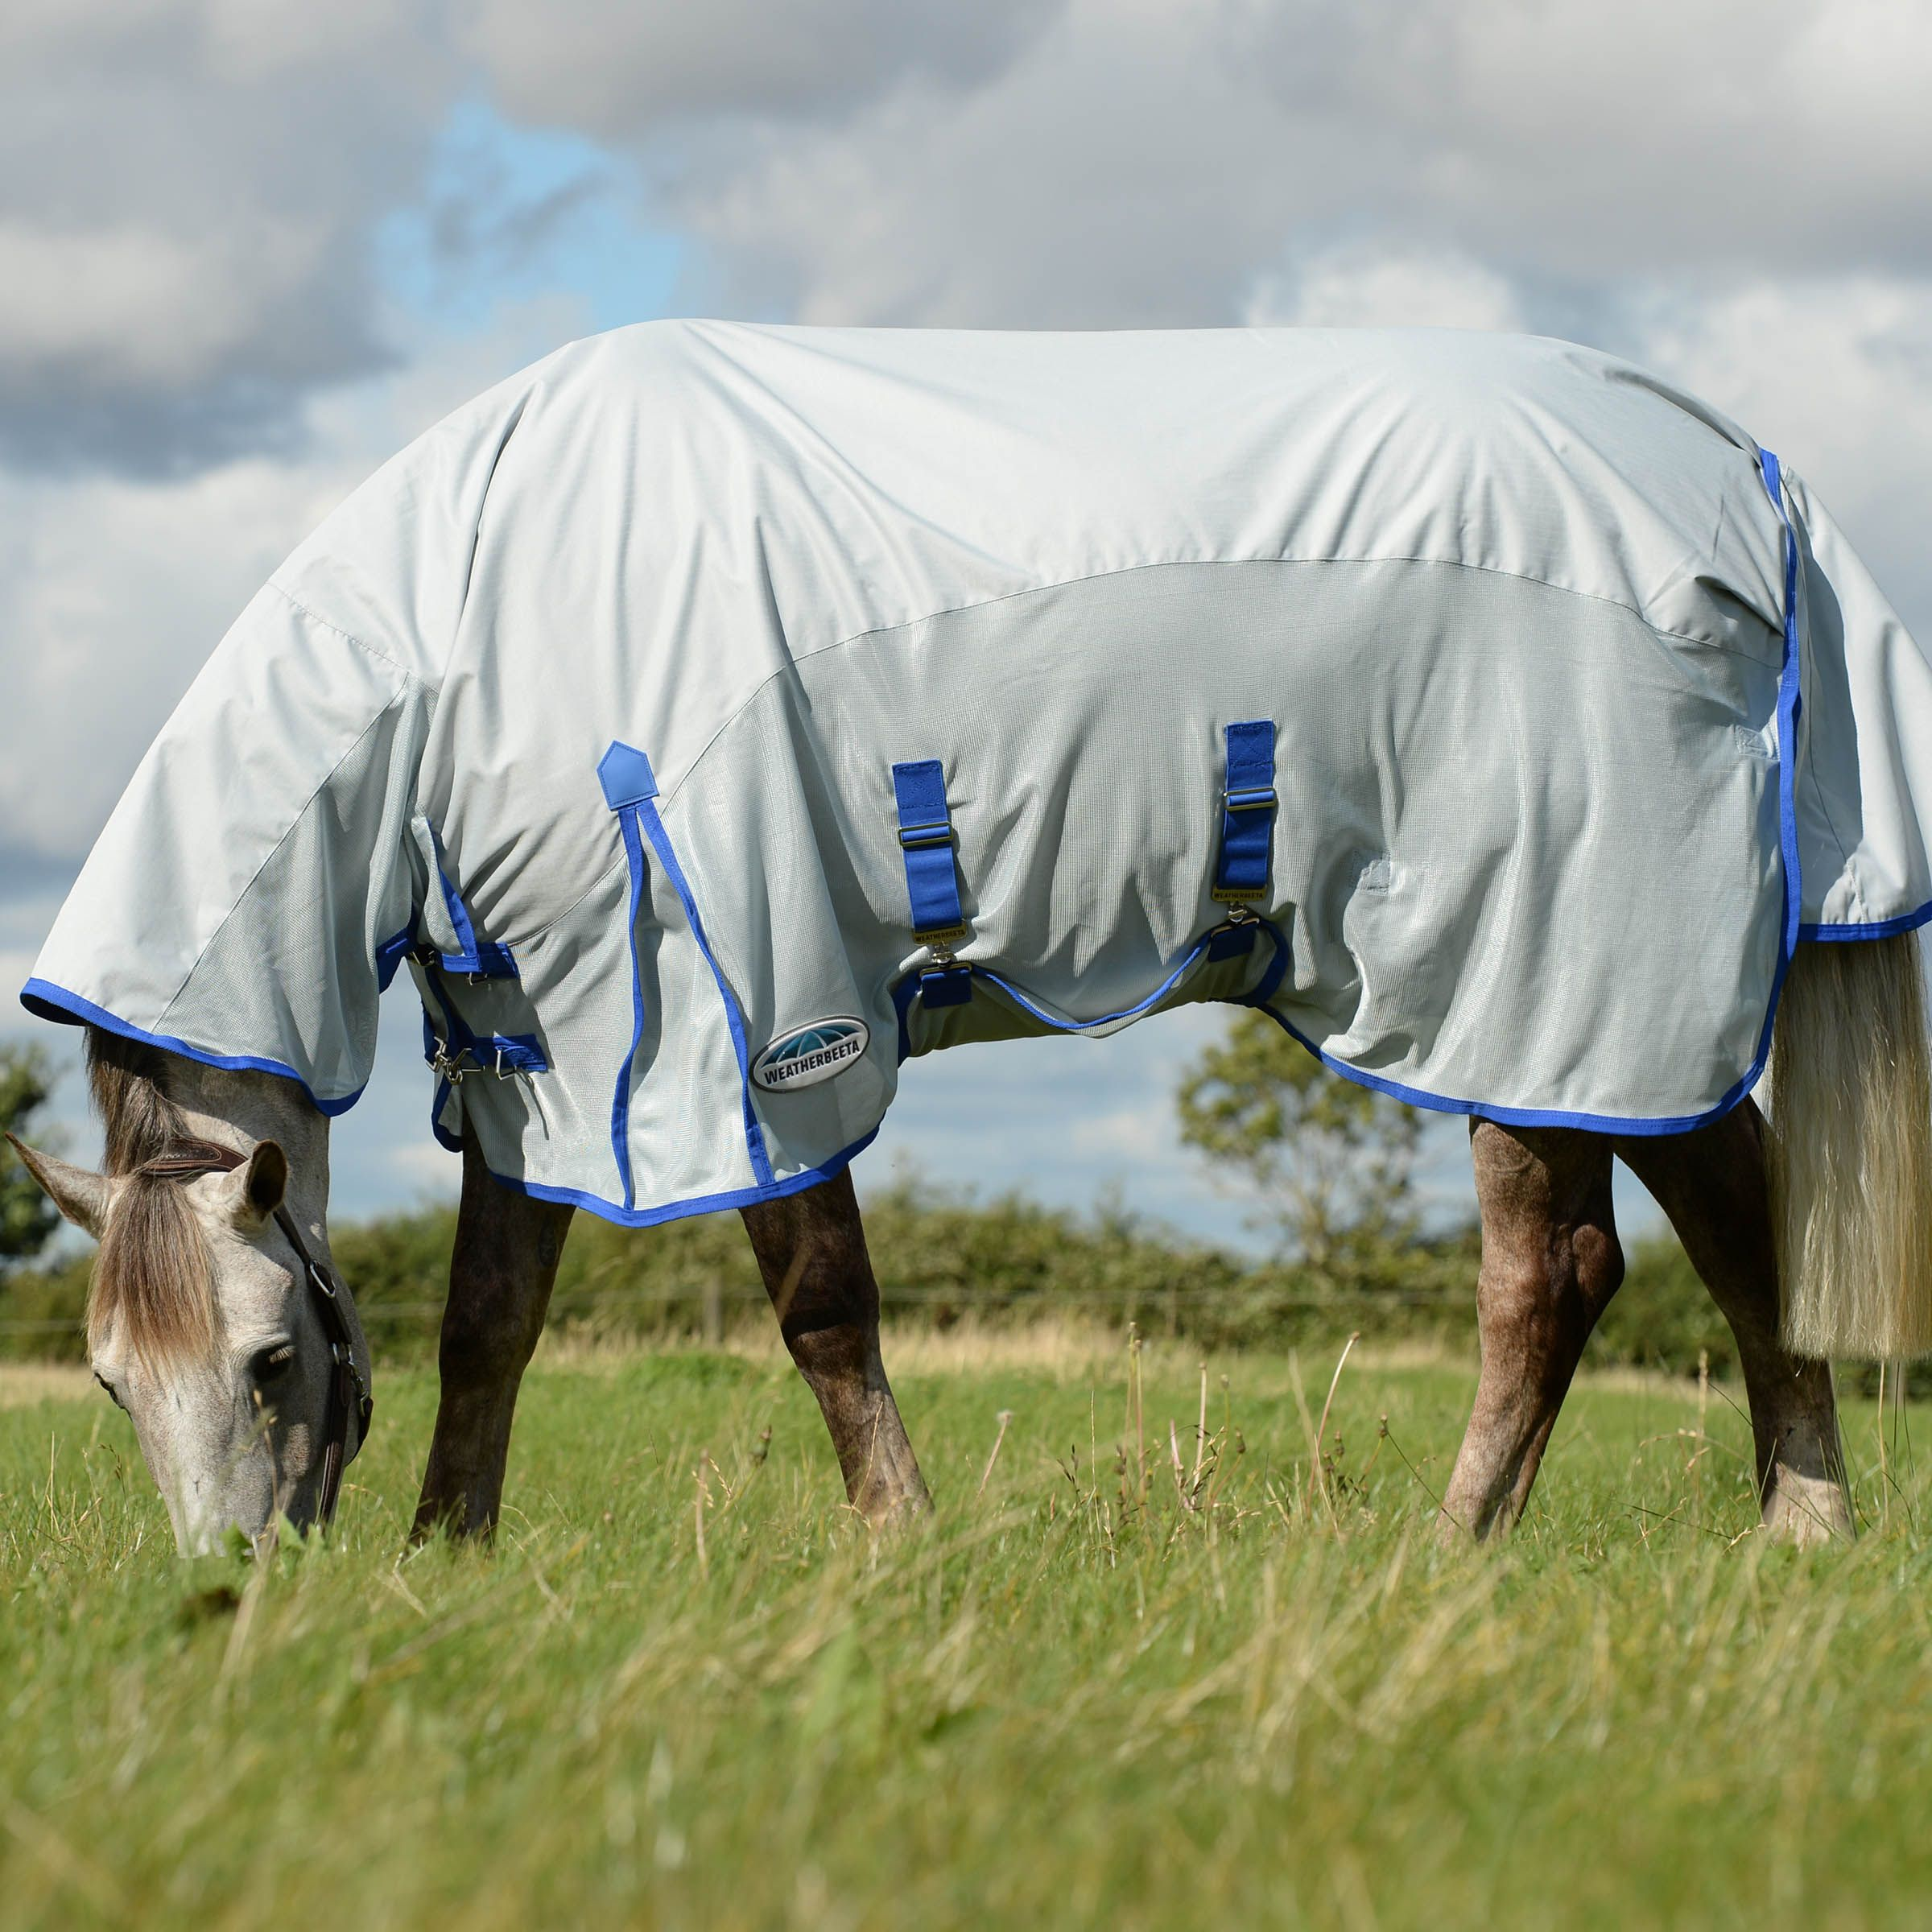 5 Reasons You Should Use a Fly Rug and a Fly Mask on Your Horse